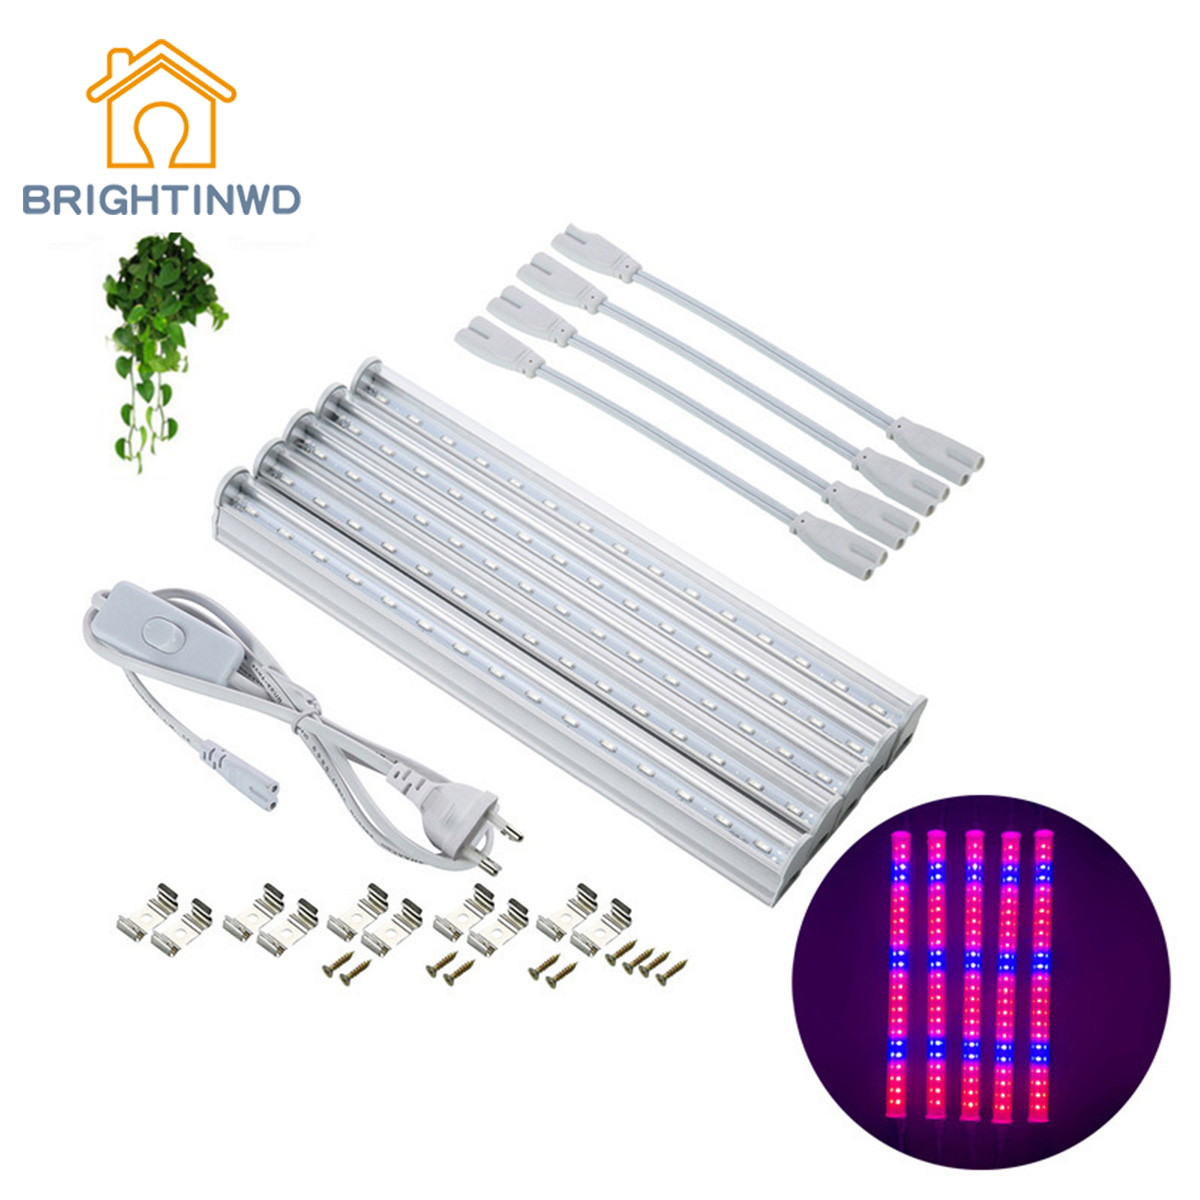 BRIGHTINWD T5 Lamp LED Plant Lamp Red And Blue With Separate Disassembly Full Spectrum Plant Growth Lamp USB